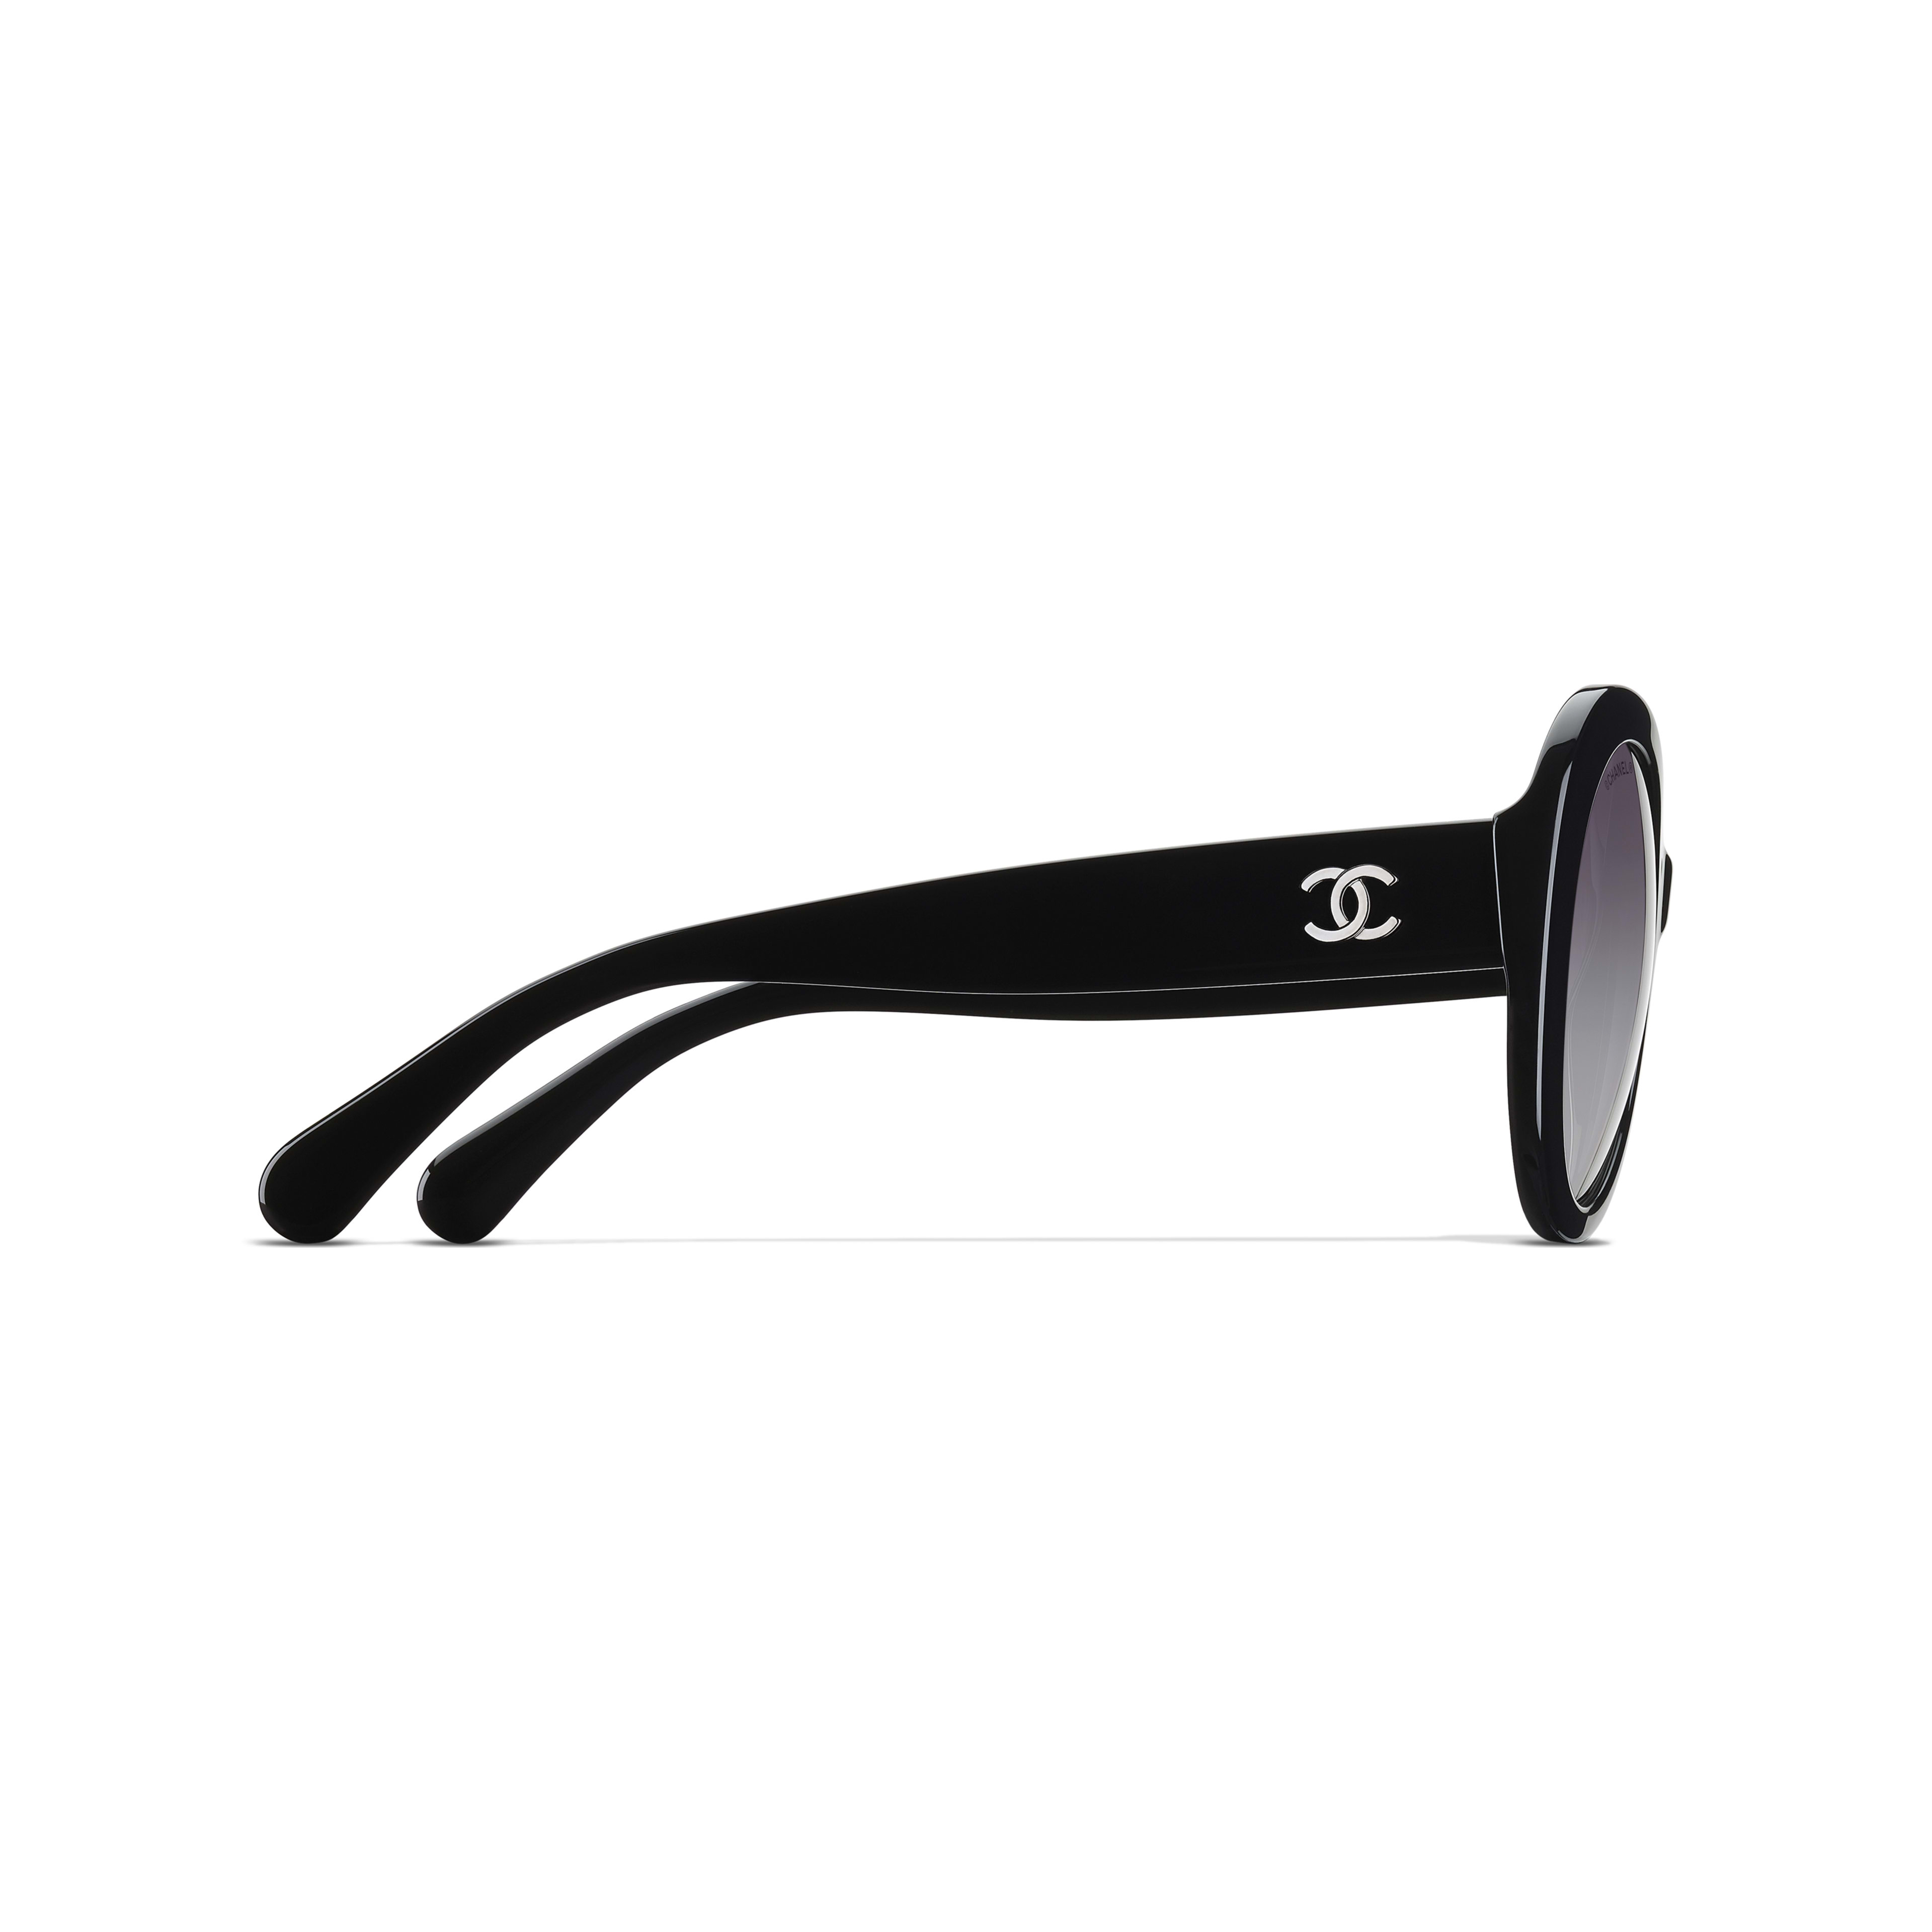 Oval Sunglasses Acetate Black -                                                         view 3 - see full sized version